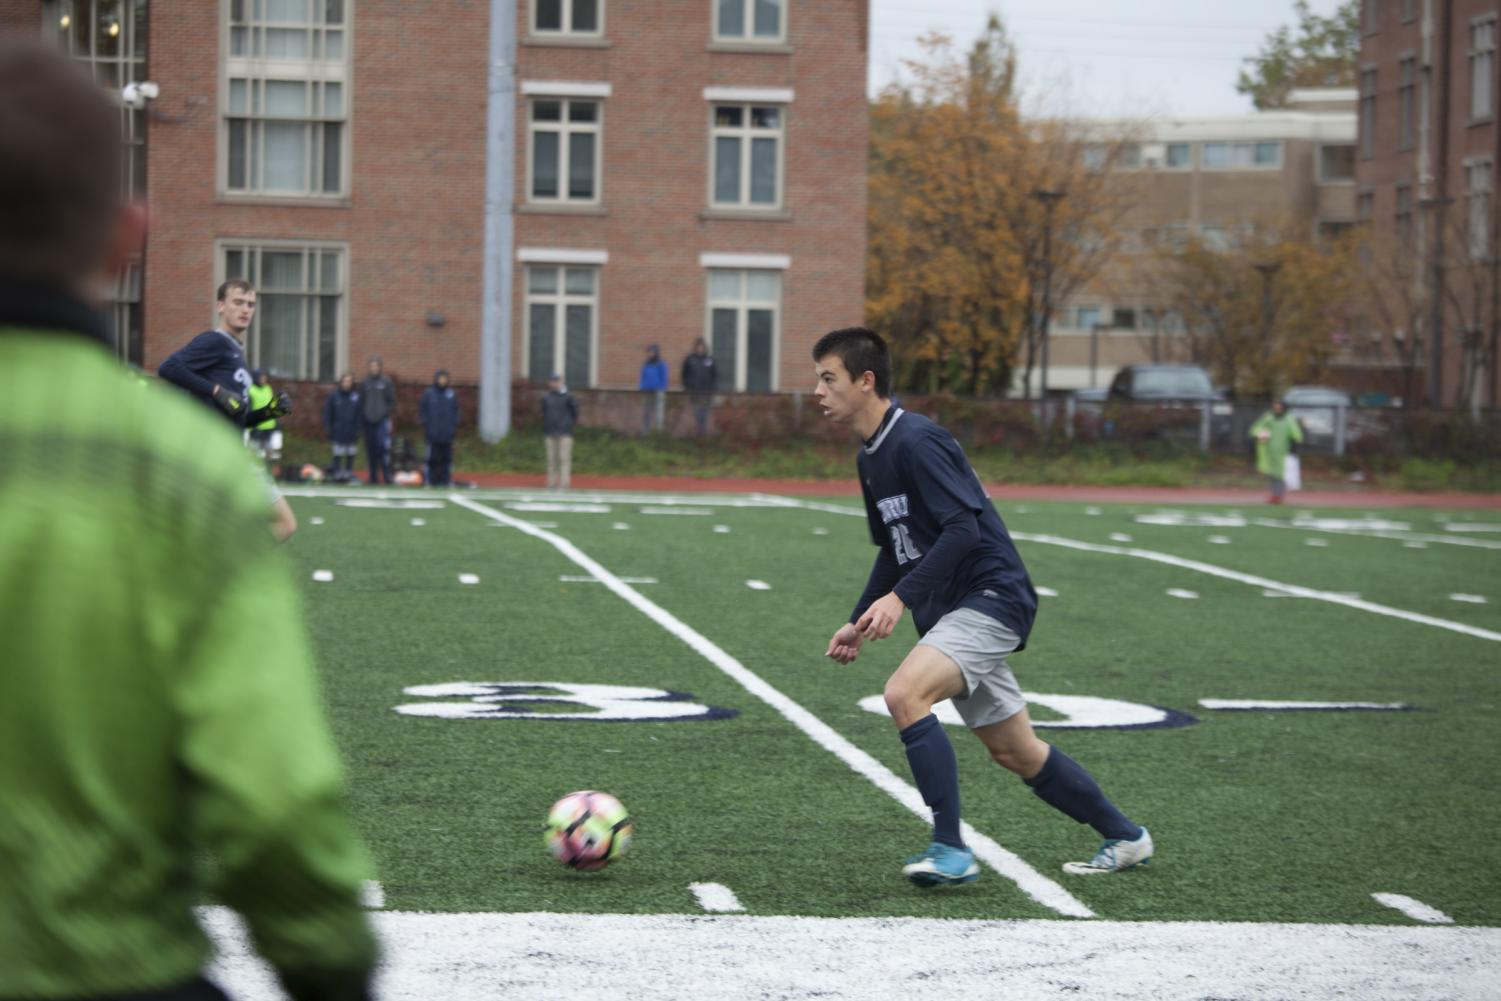 Battling the cold, second-year midfielder Brian Woo looks upfield for a teammate.